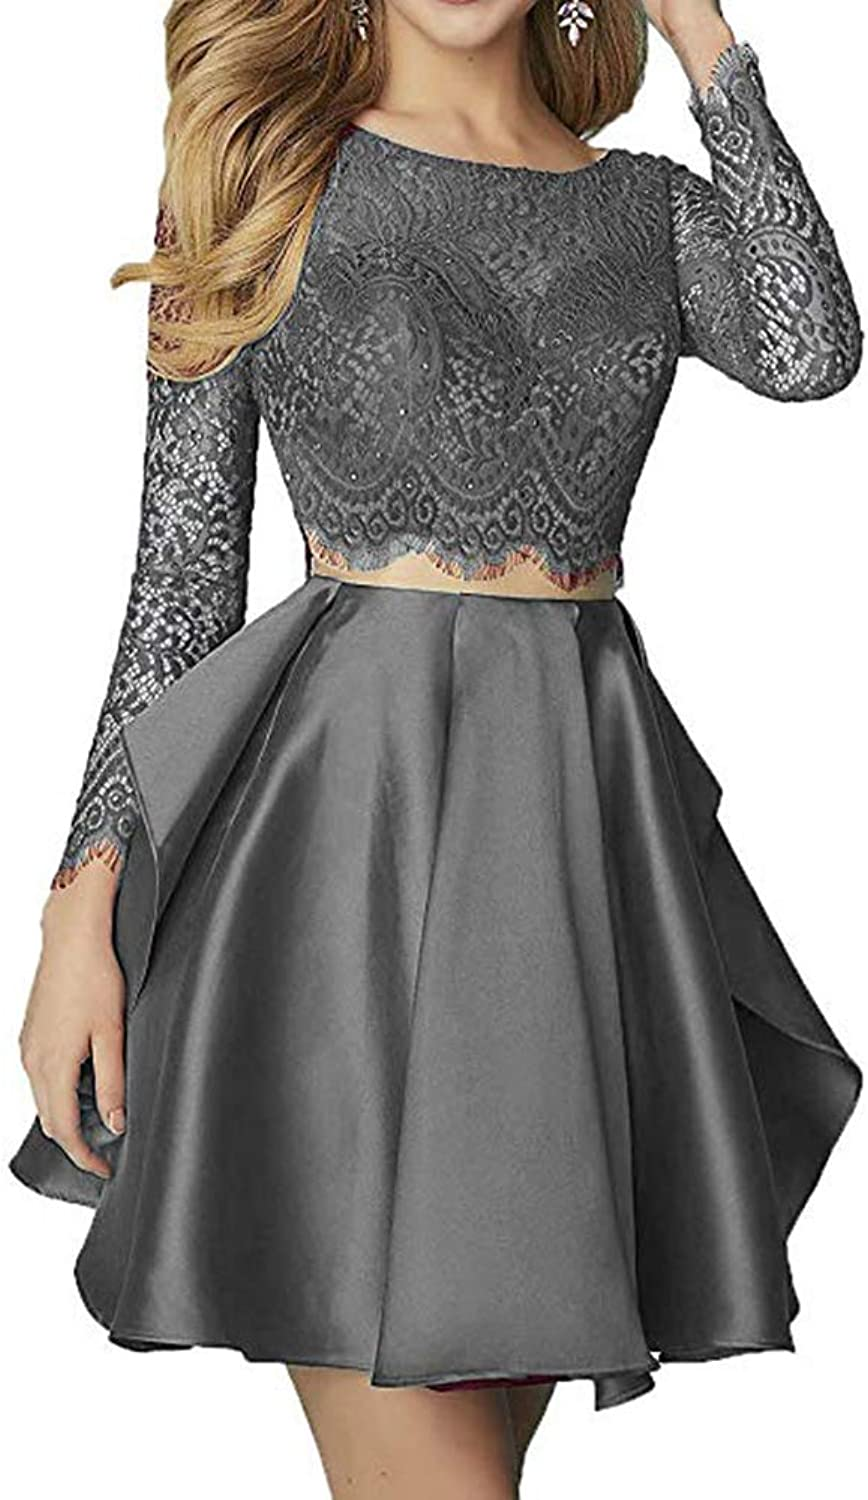 XSWPL Women's Satin Long Sleeve Short Prom Homecoming Dresses Two Piece Prom Party Gown